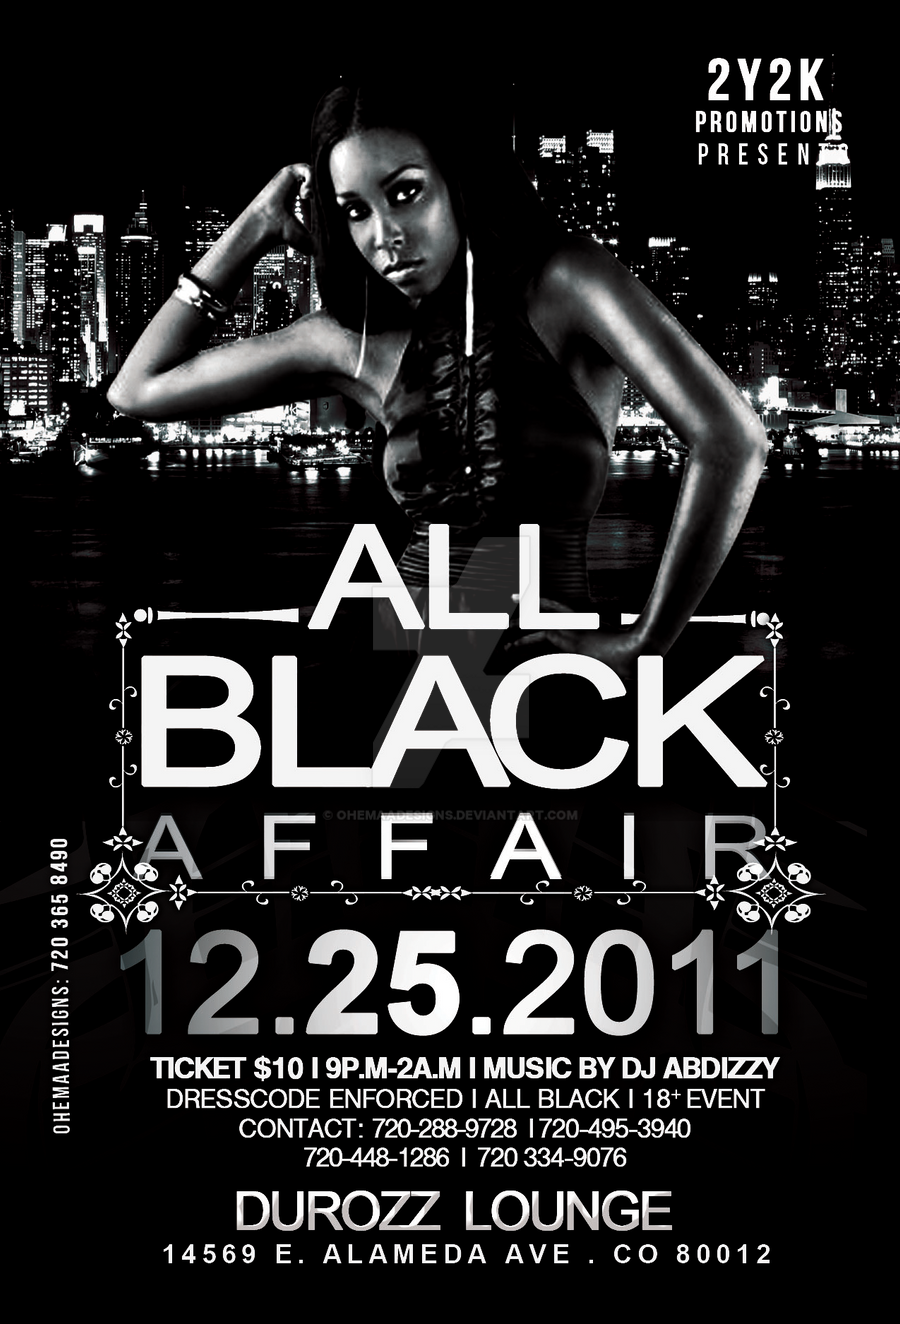 all black affair by ohemaadesigns on deviantart